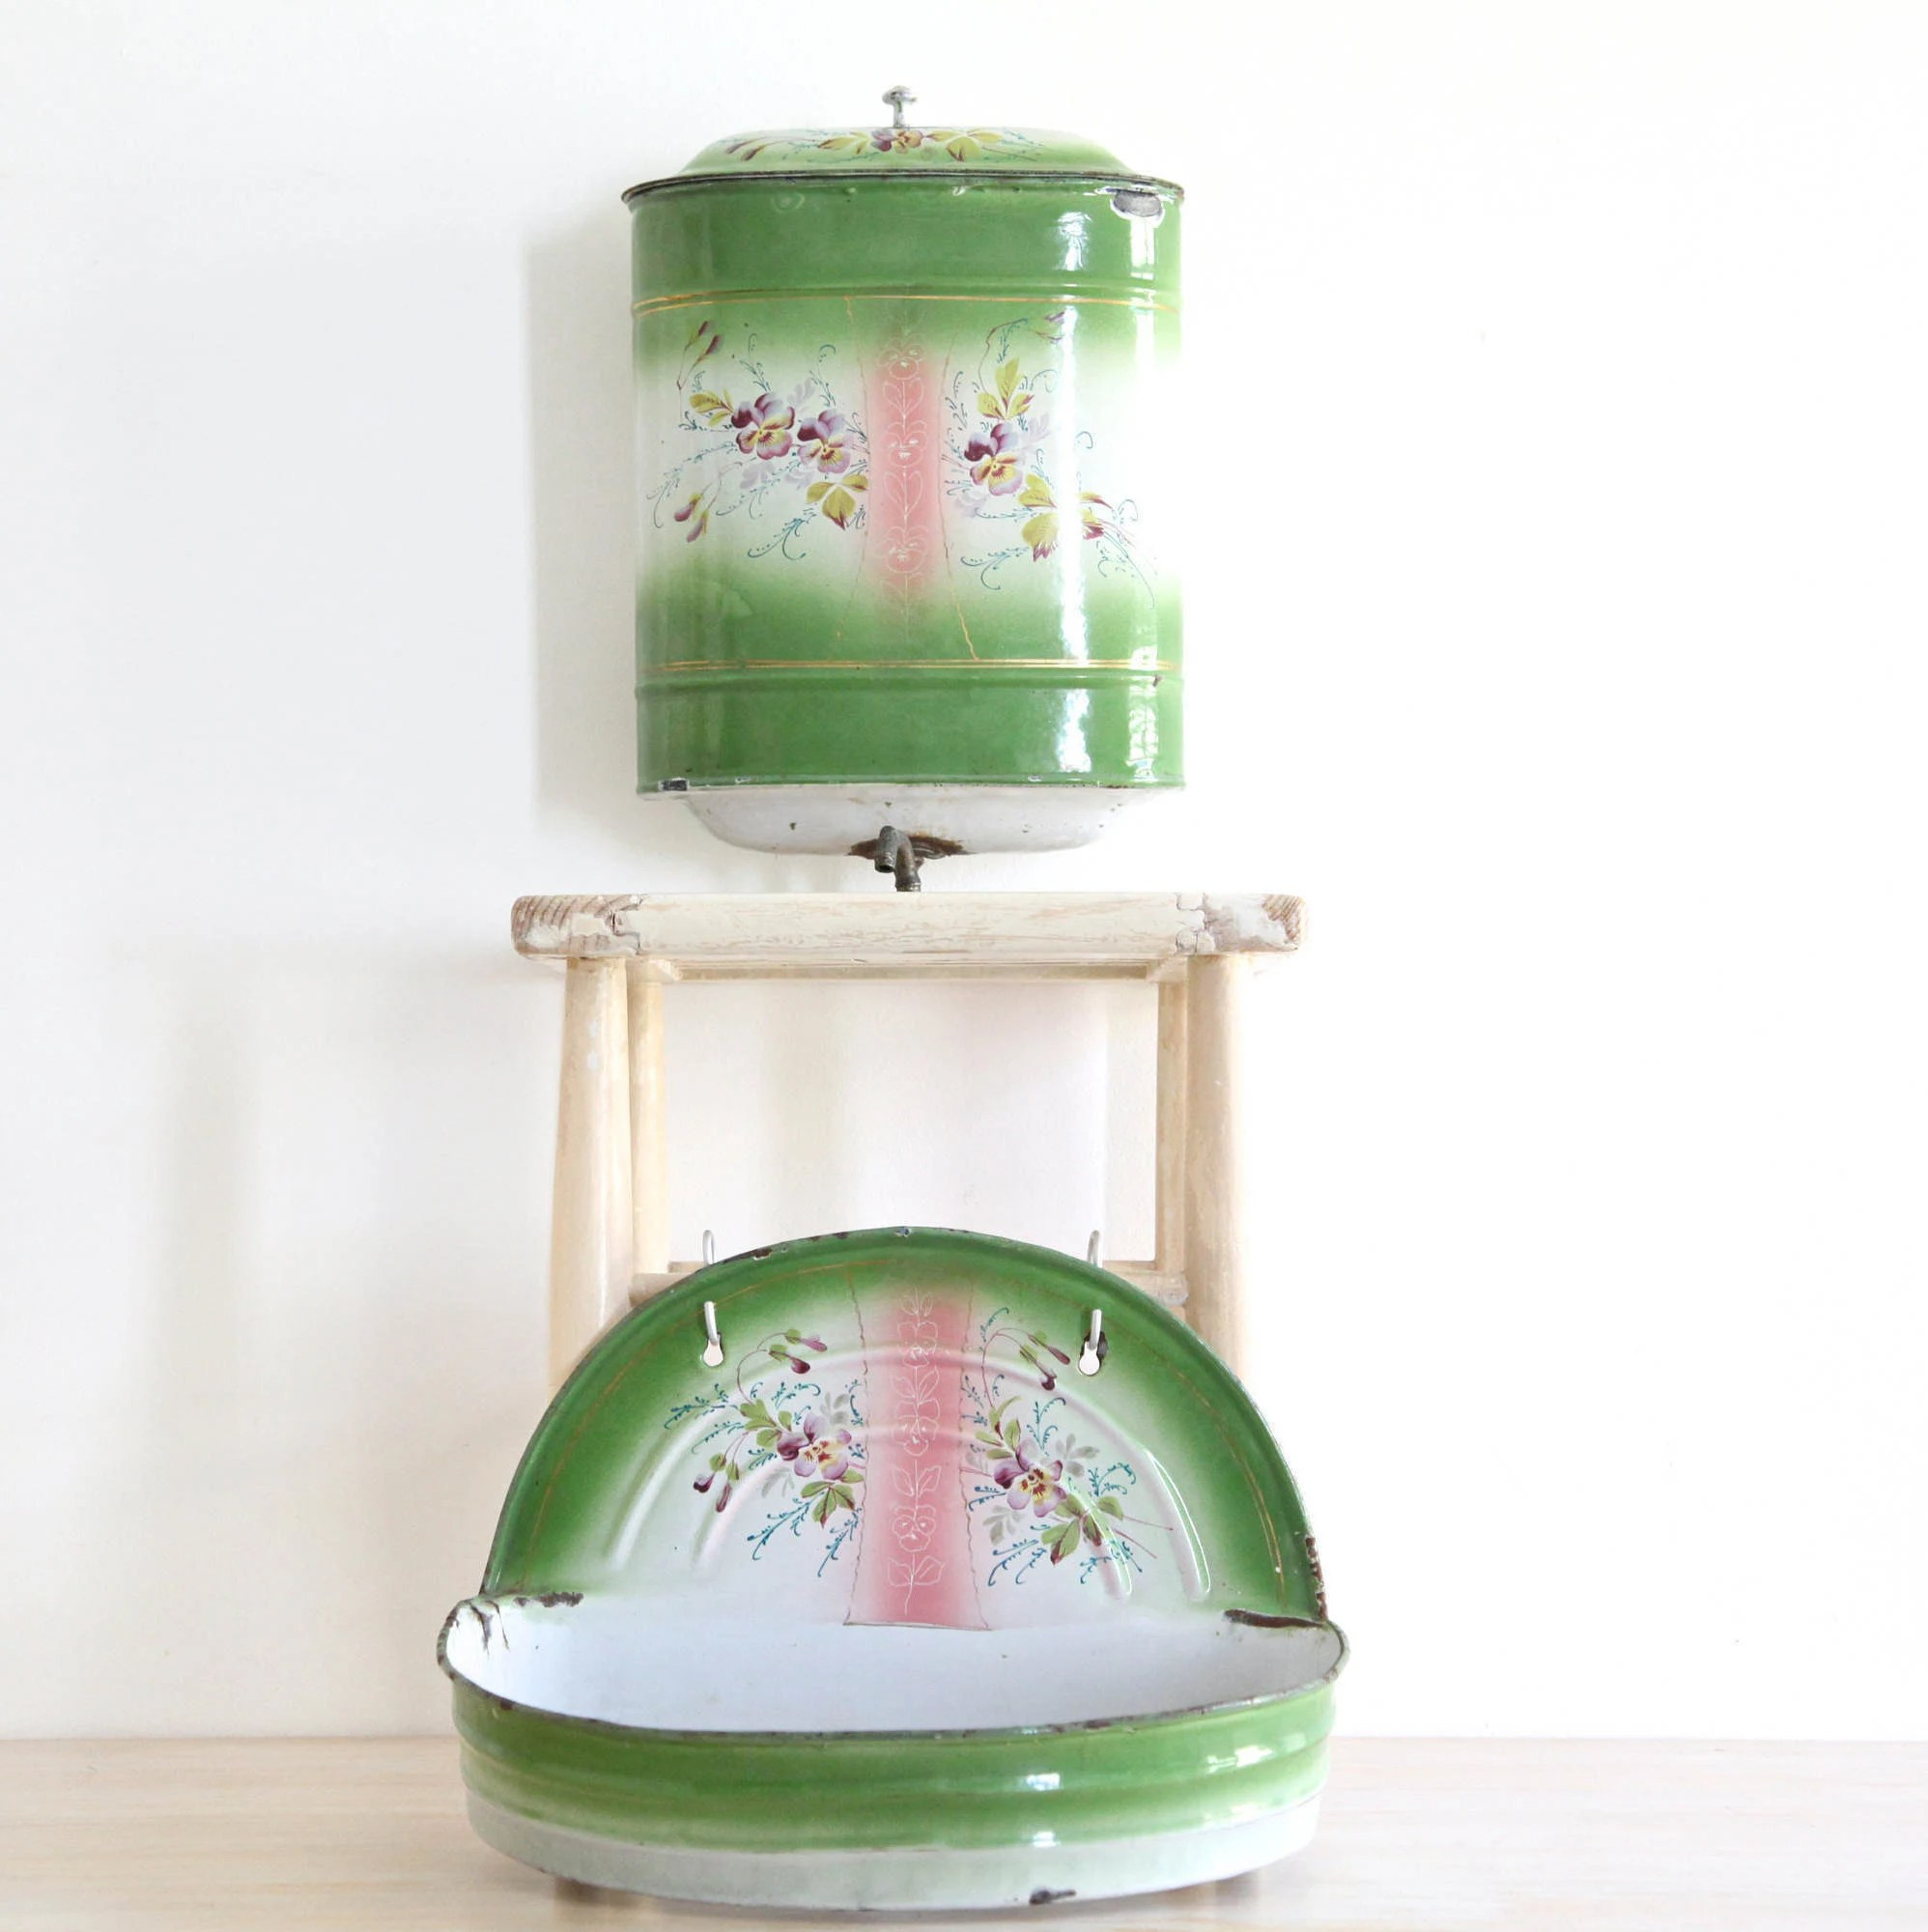 Lavabo Shabby Chic French Water Container Green And Pink Lavabo With Pansies Flowers Enamelware Wash Basin Hanging Wash Basin Shabby Chic Decor